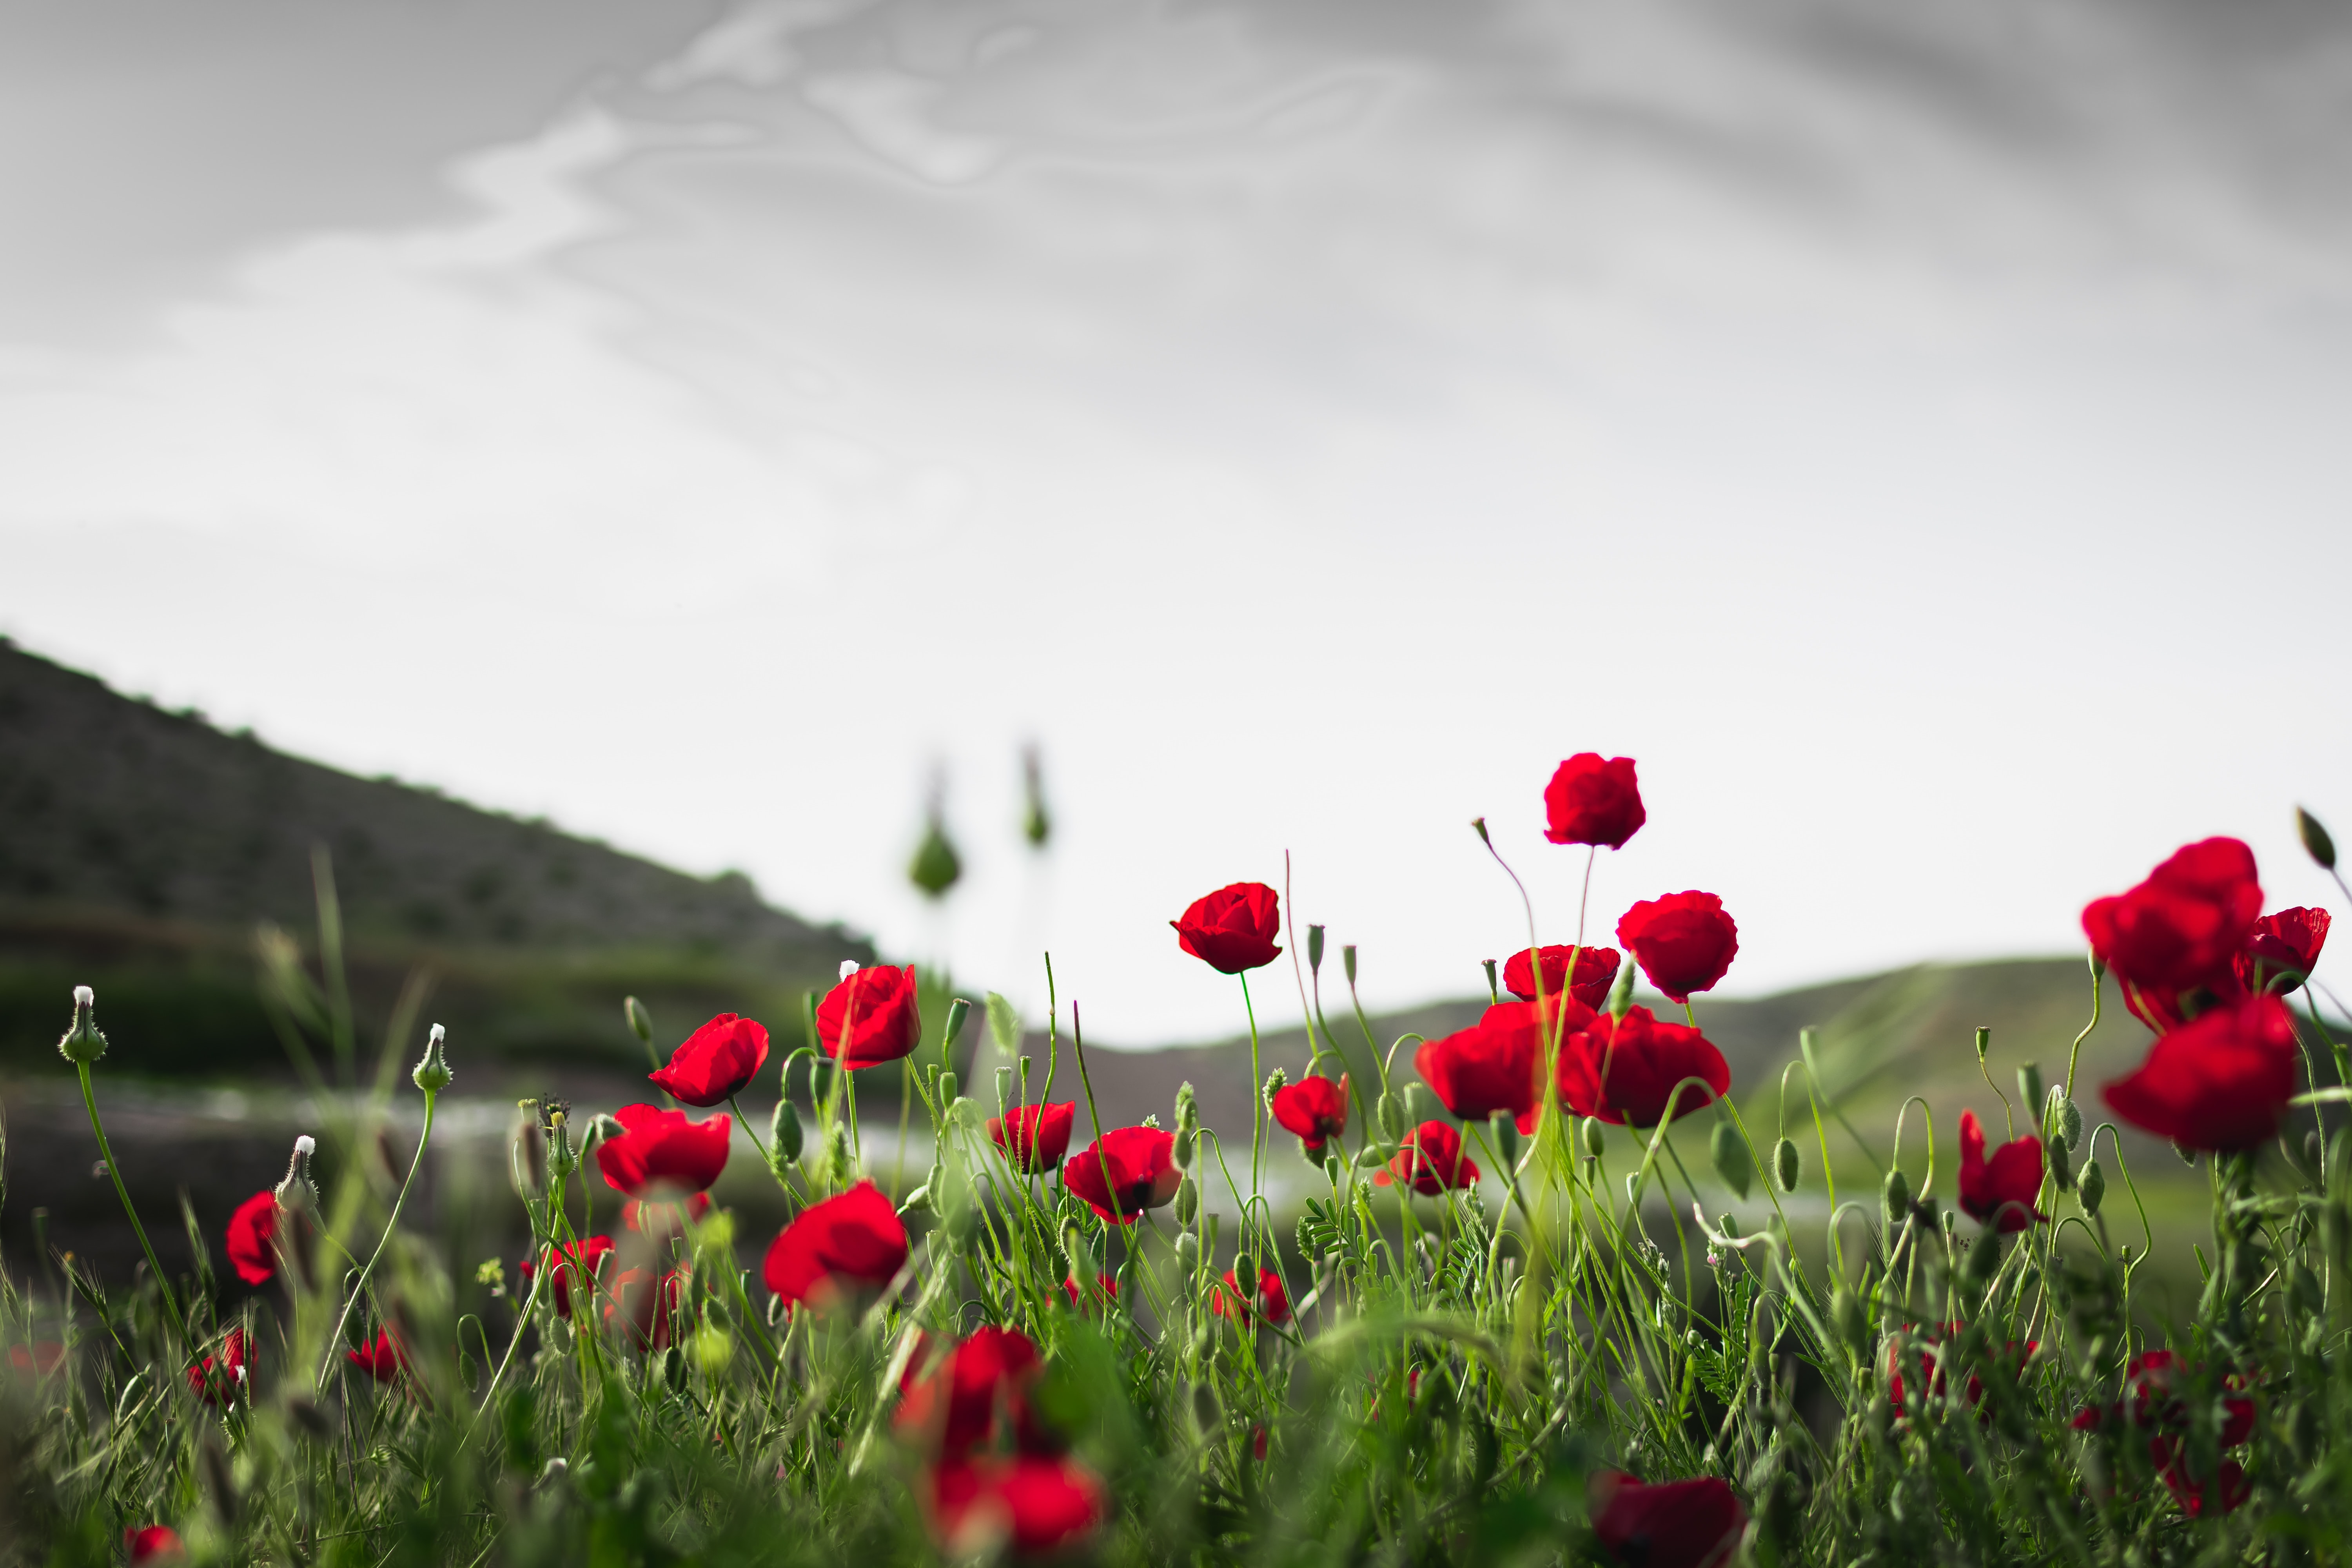 red roses in bloom in green grass fields